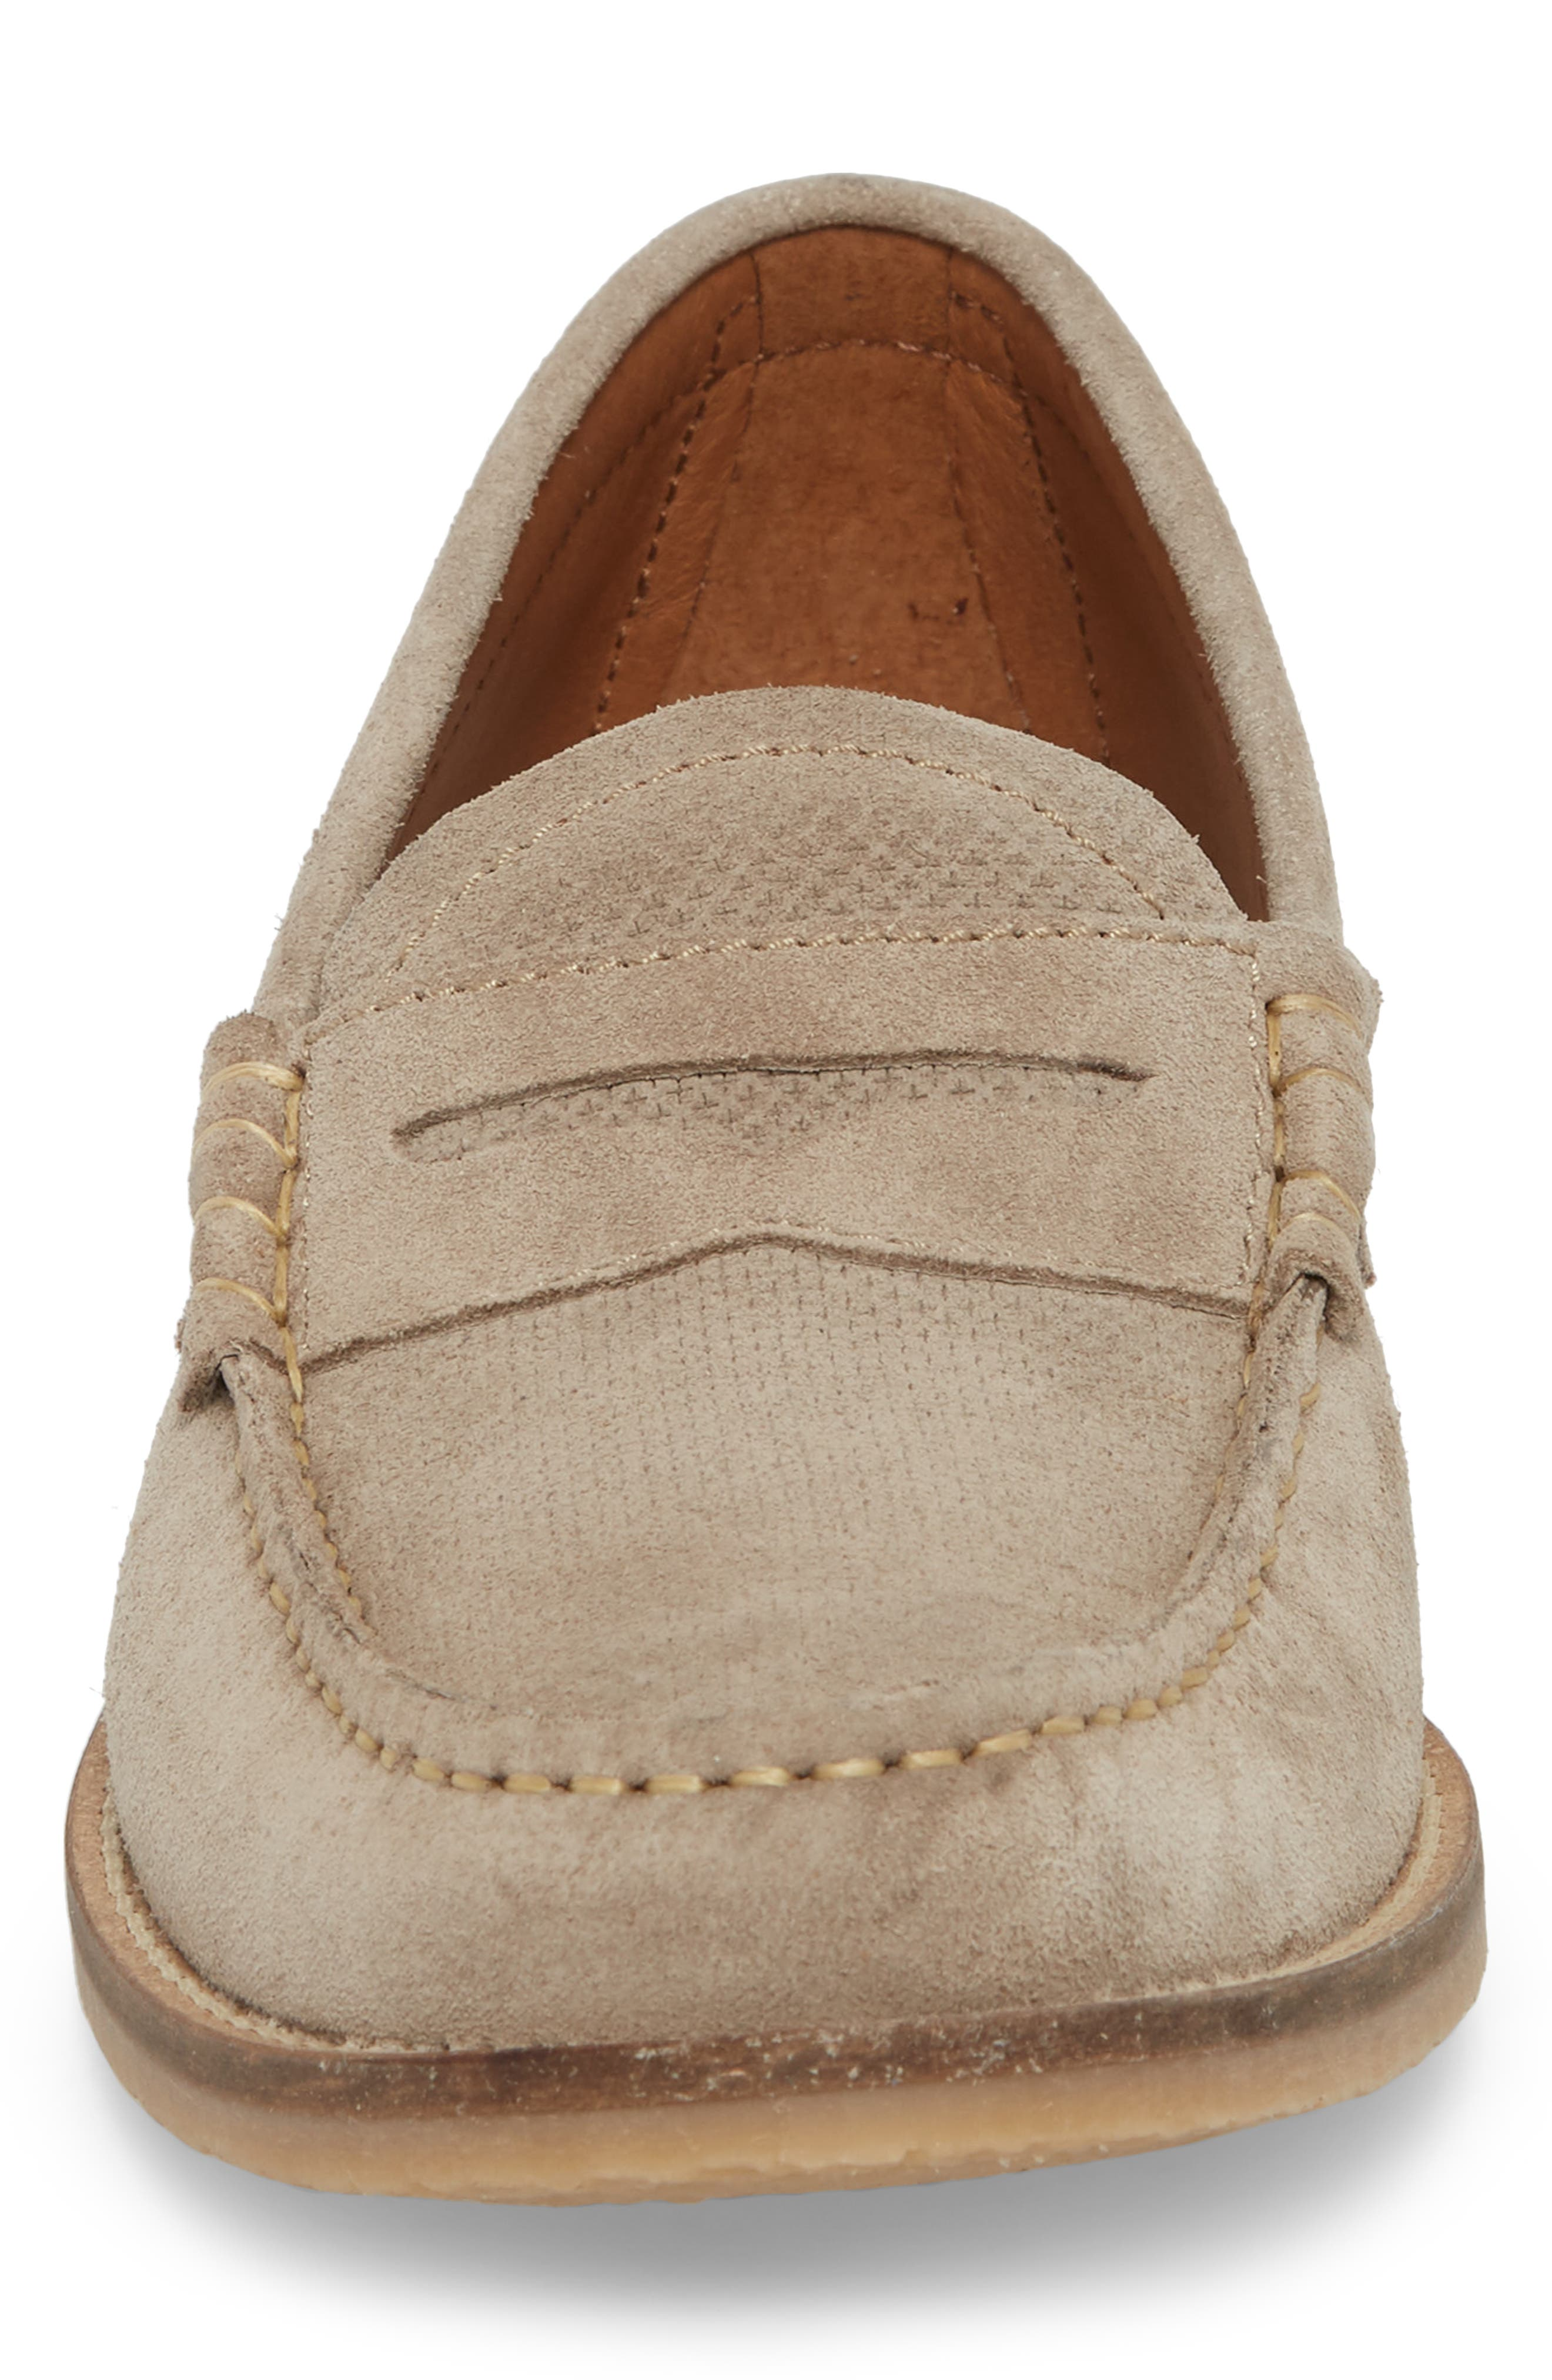 Wayne Textured Penny Loafer,                             Alternate thumbnail 4, color,                             EARTH BEIGE